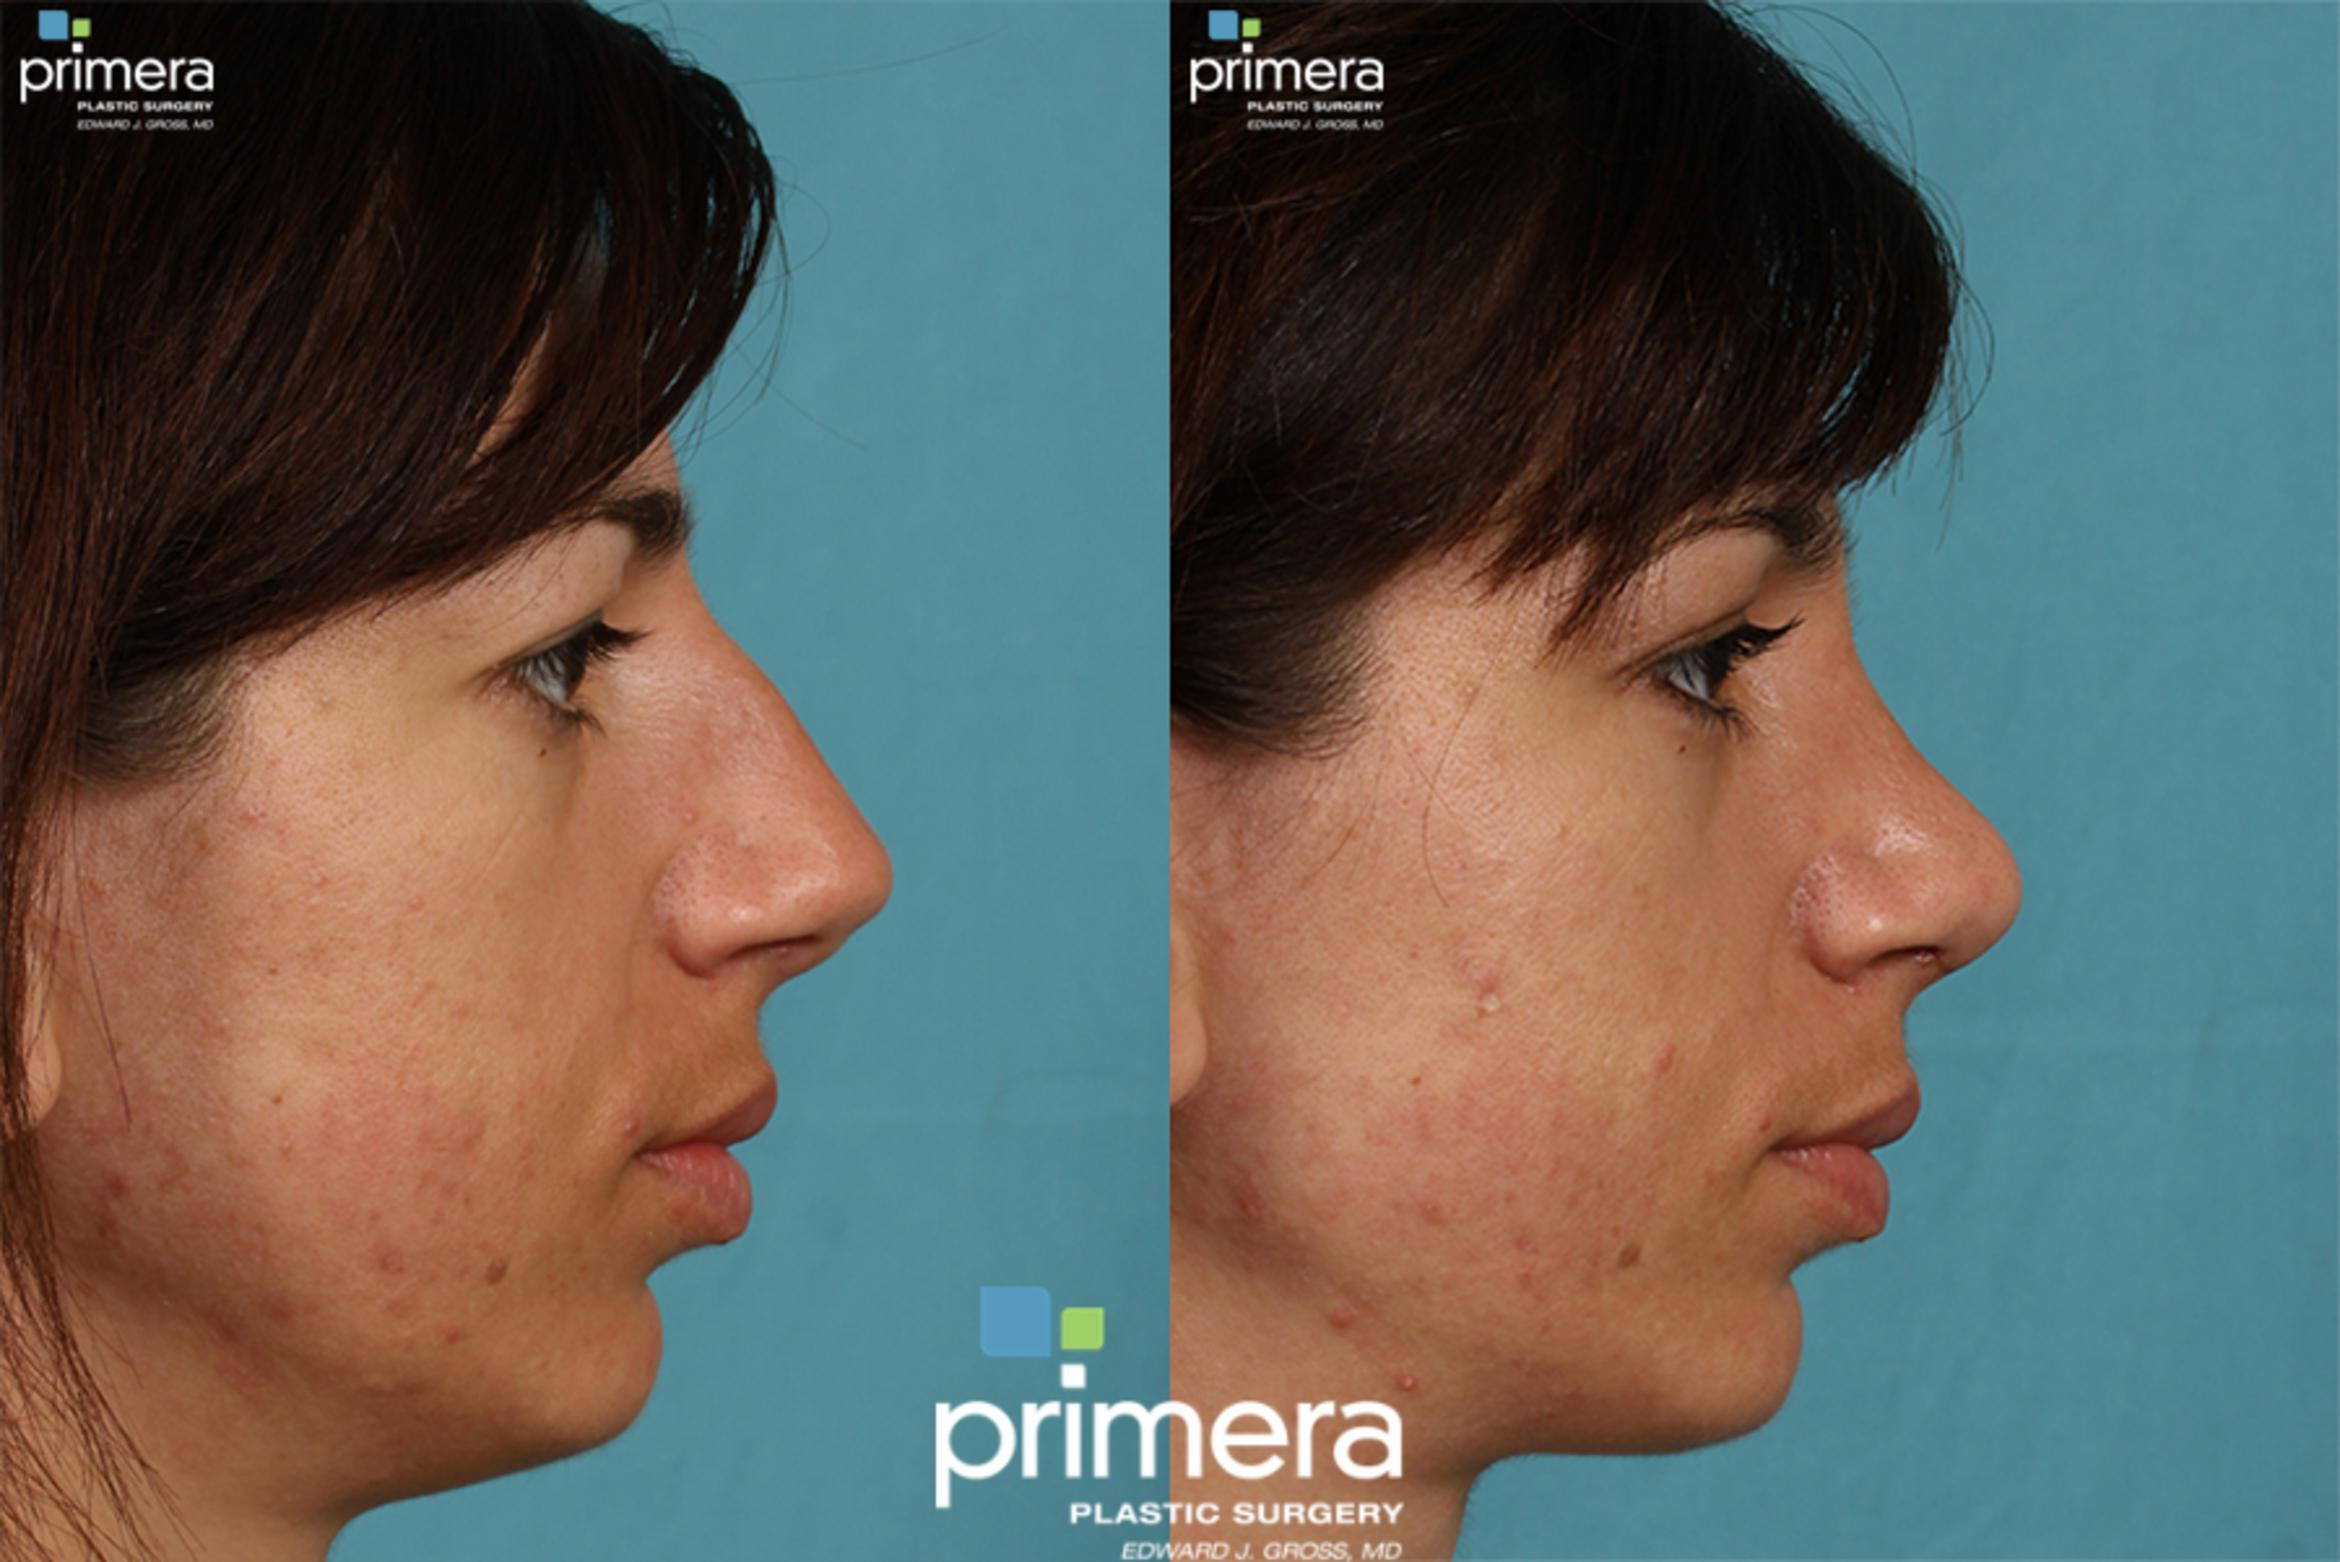 Rhinoplasty Before & After Photo | Orlando, Florida | Primera Plastic Surgery